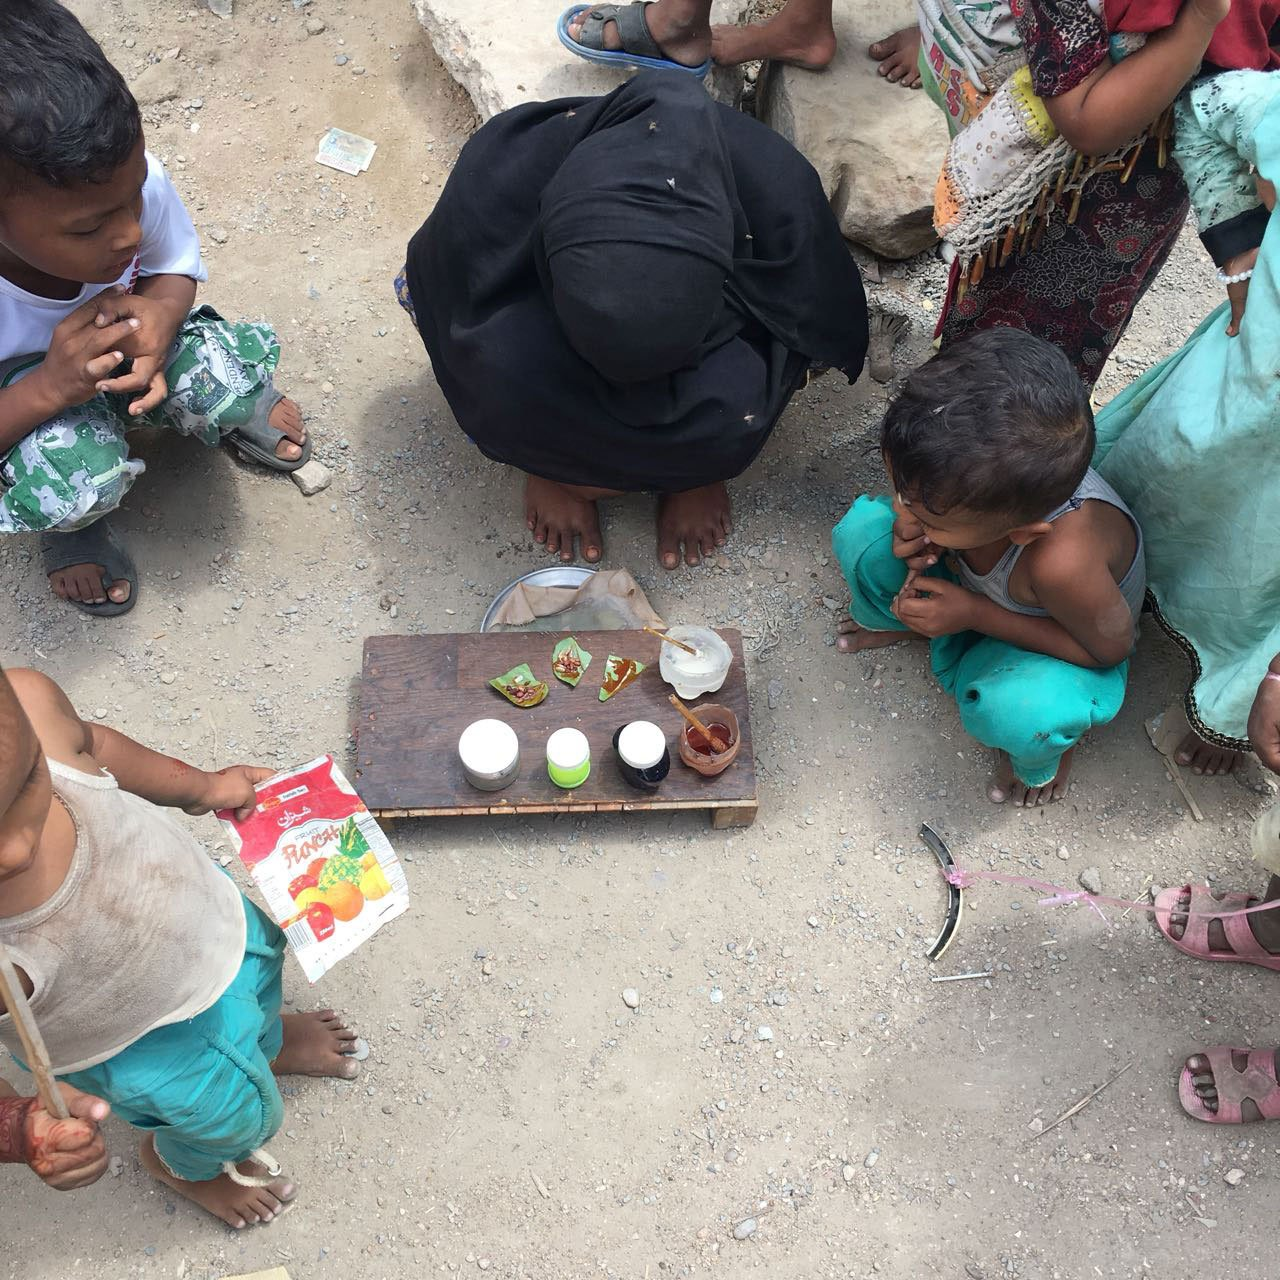 Children in Arkanabad selling paan (betel leaves).